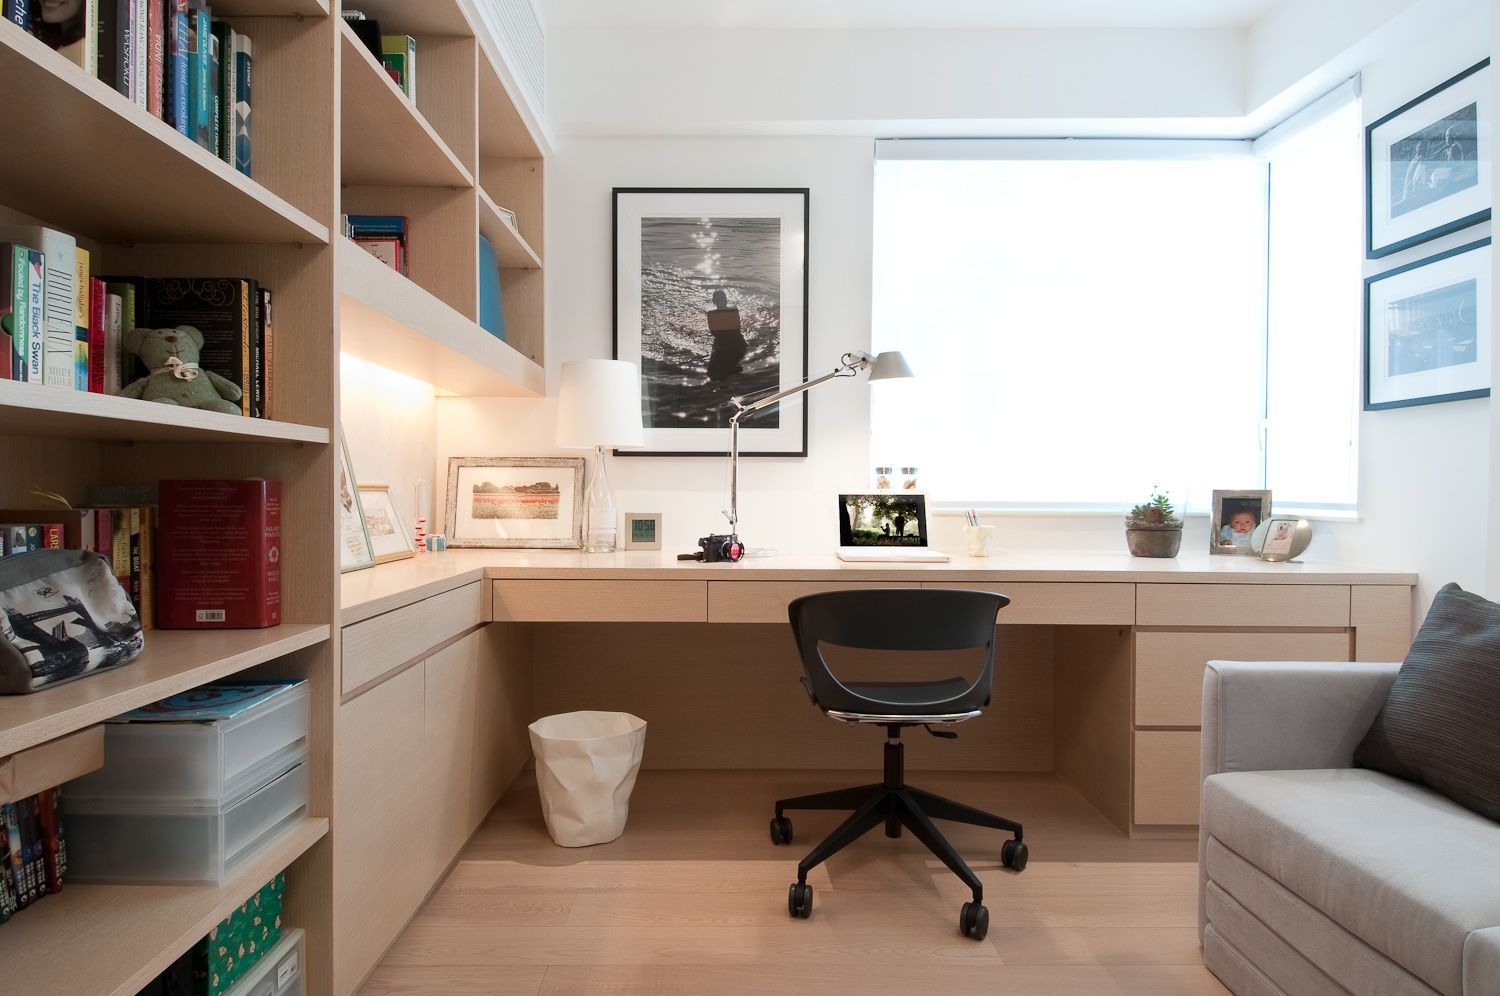 What layout confusion resembles  research study table for our youngsters try to look at this photo maybe you will certainly obtain ideas and brilliant also most popular designs children   chairs today rh pinterest